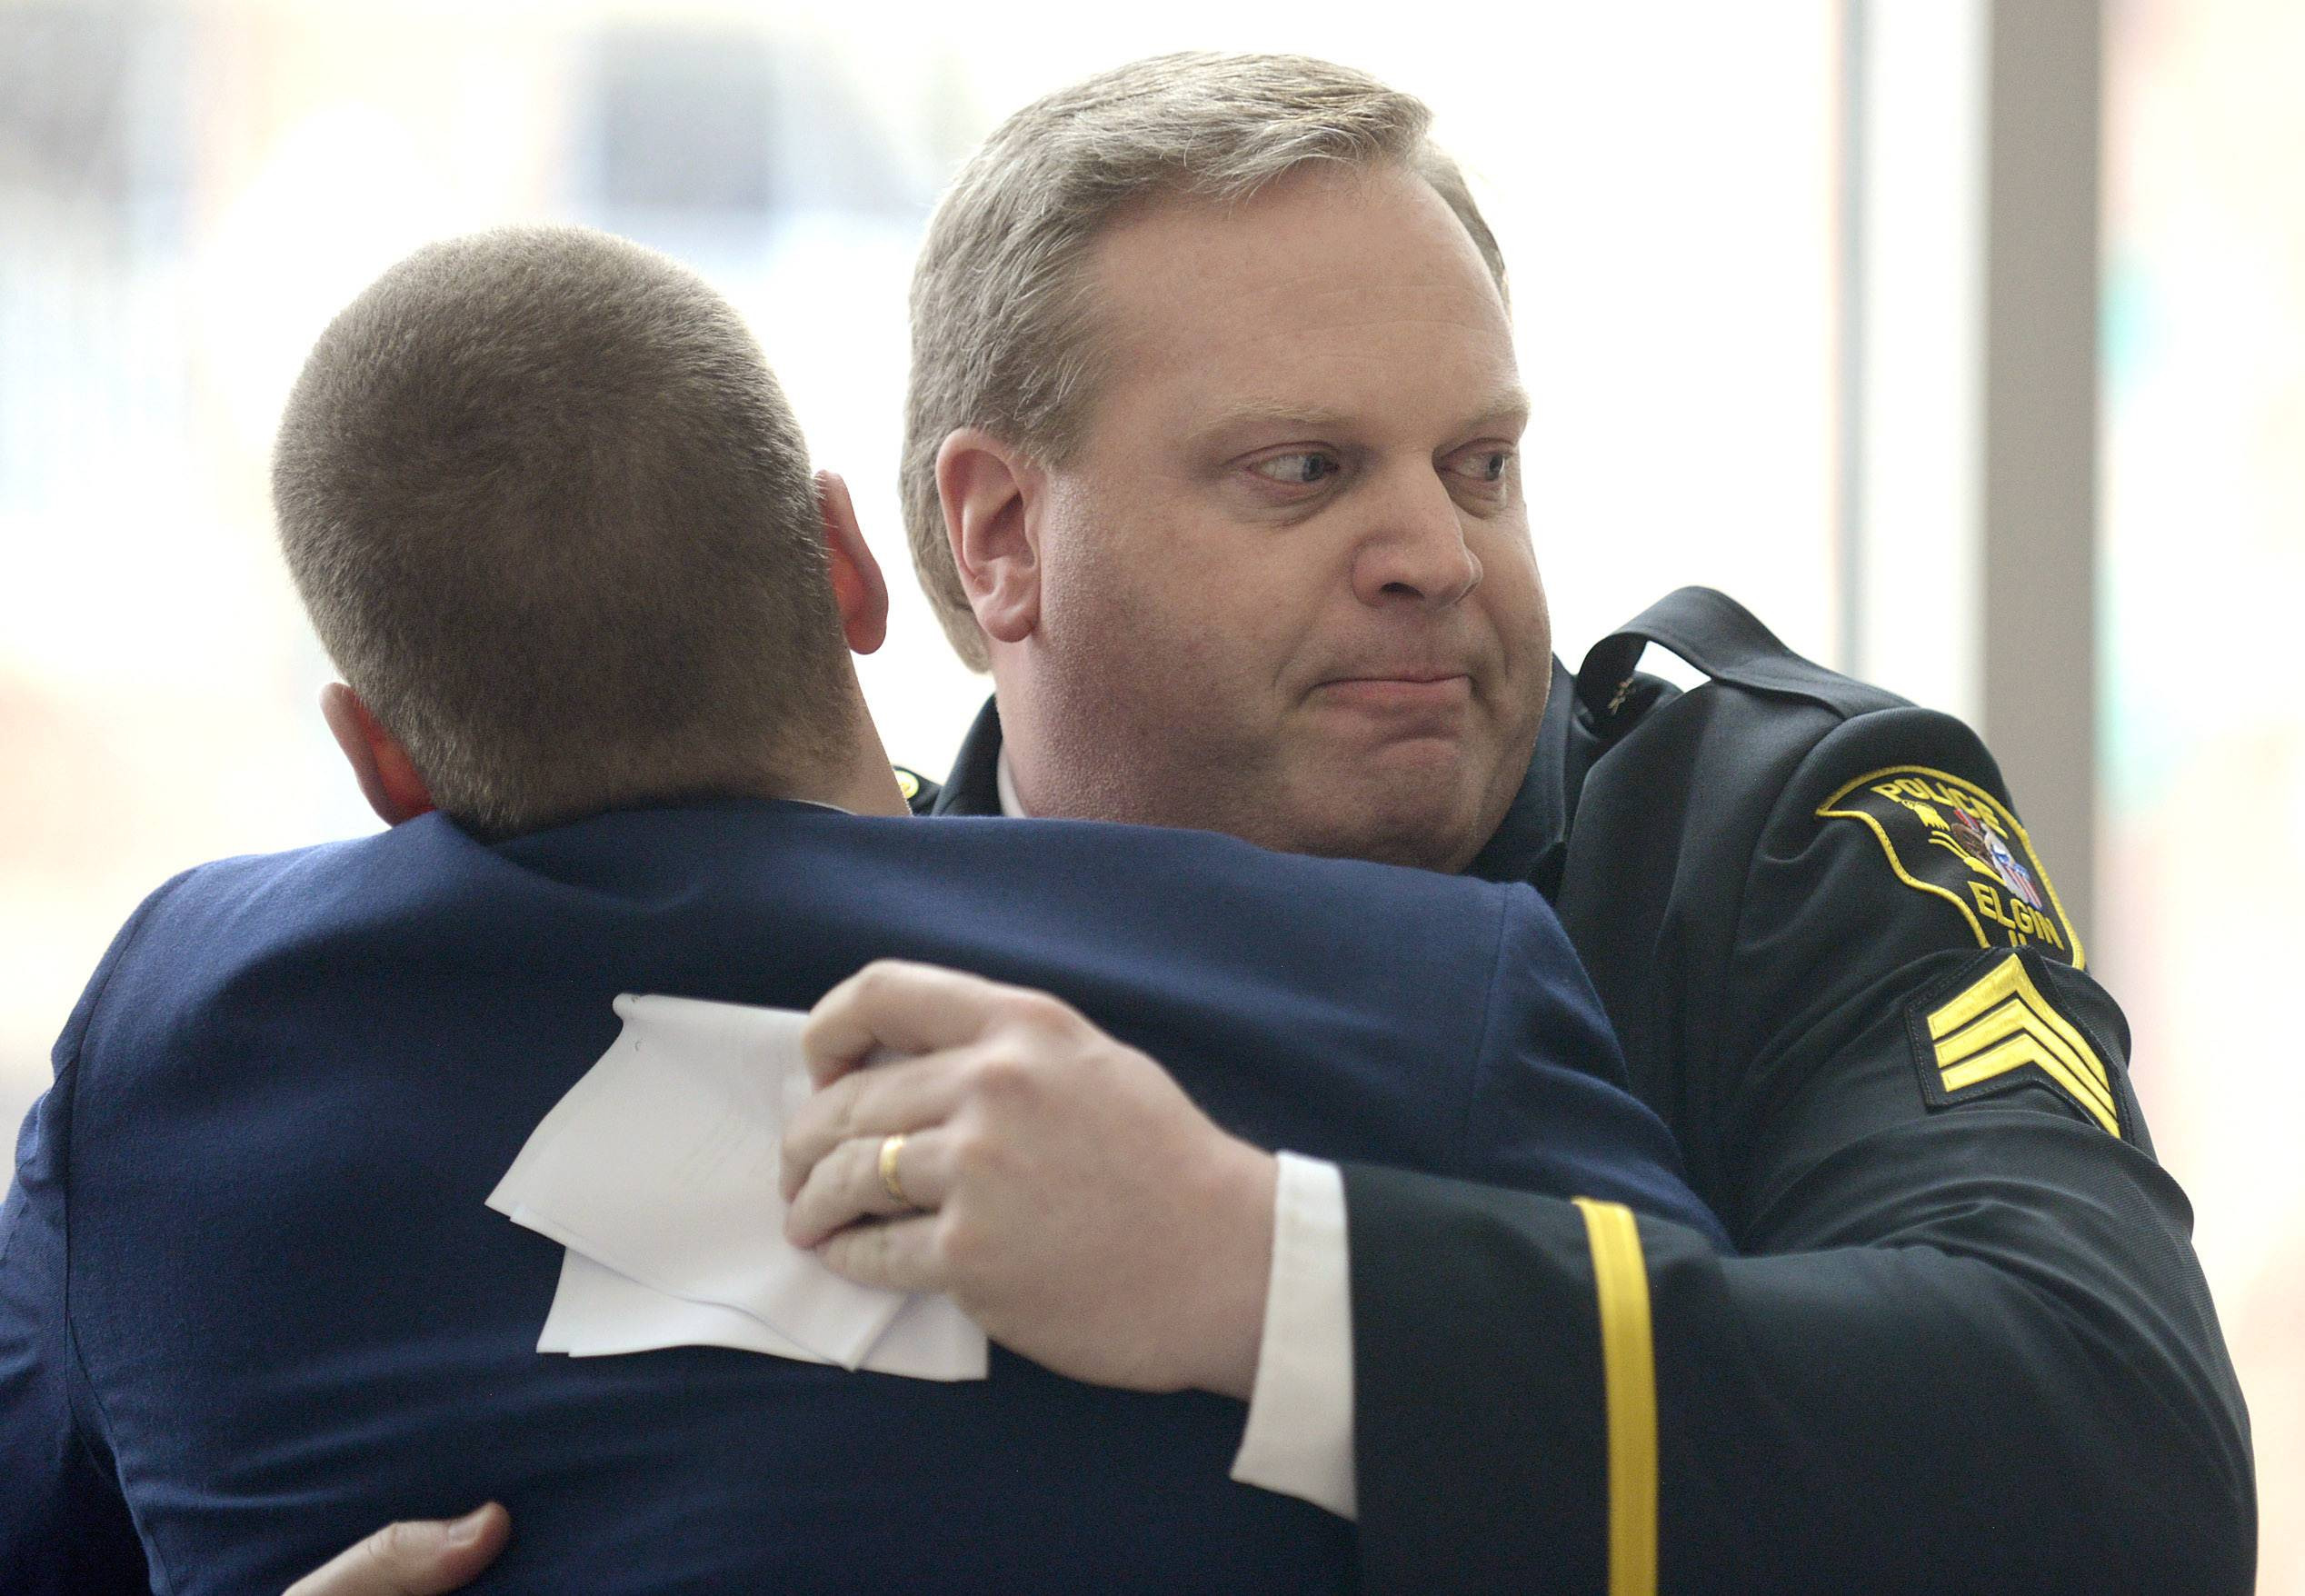 Retiring Elgin Police Sgt. Don Thiel gets a hug from his son, Danny, after giving his retirement speech Friday. Danny, 21, is in the Air Force, based in New Jersey, and flew in for the ceremony.